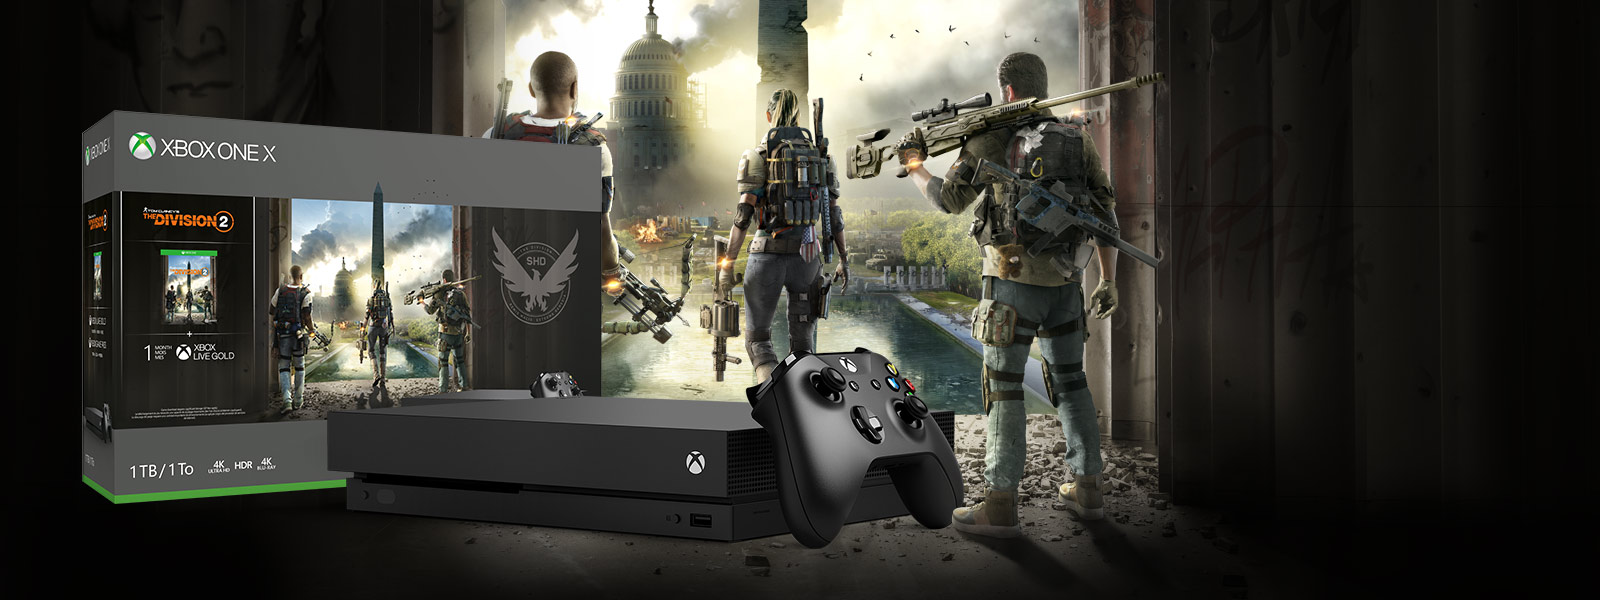 Xbox One X-console voor een hardwarebundelverpakking met Tom Clancy's The Division 2-illustratie